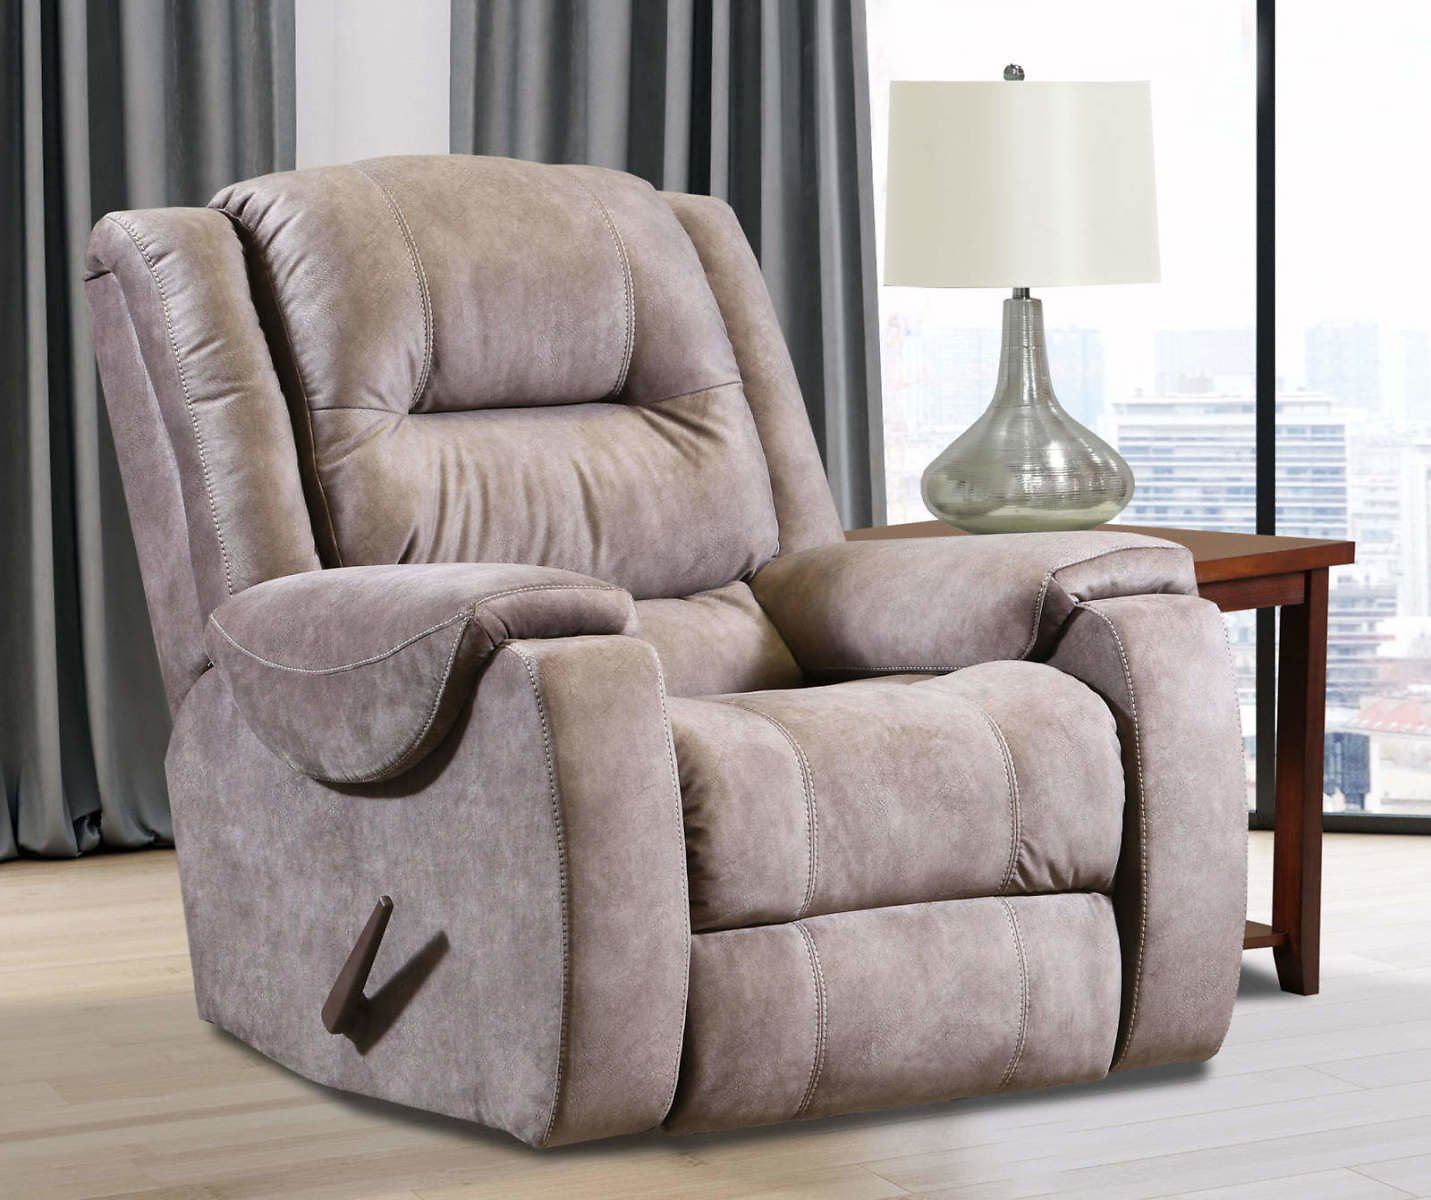 Lane Home Solutions Recliners (Mult. Options)